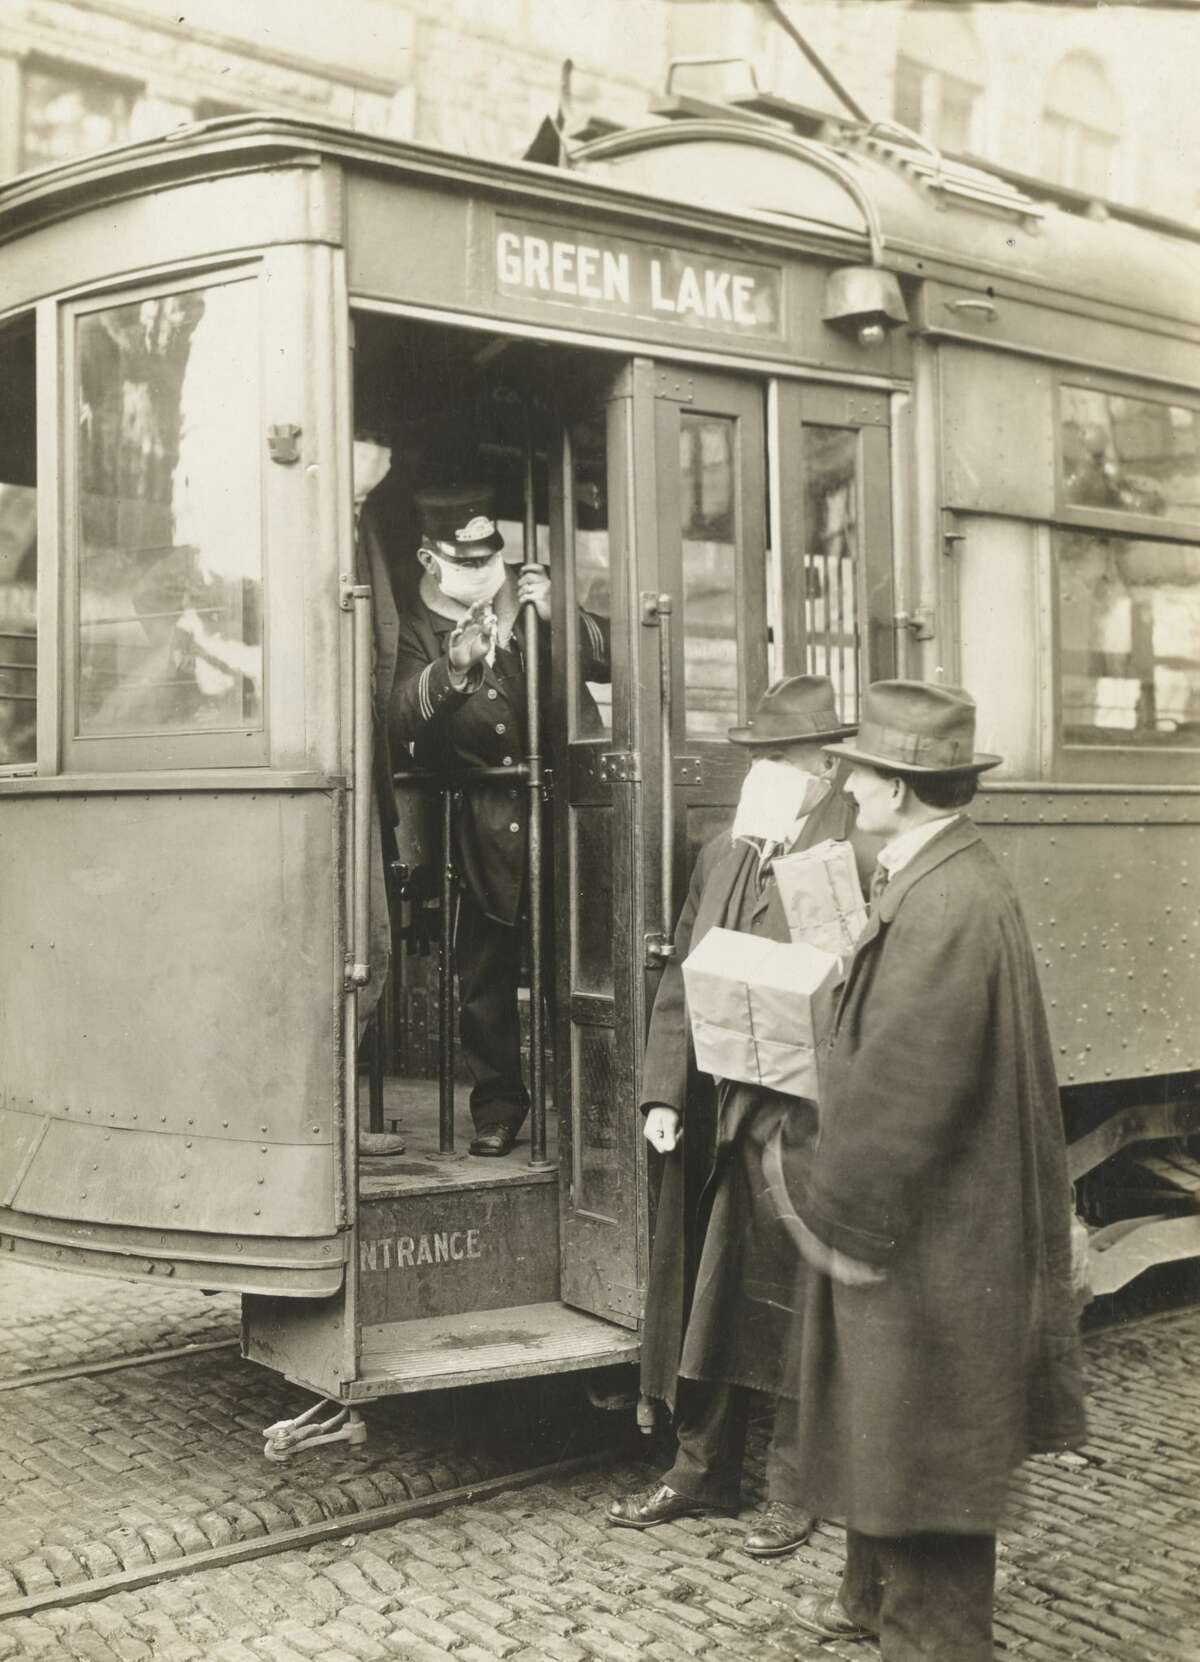 Flue precautions taken in Seattle during the Spanish Influenza epidemic meant no one to ride the street cars without wearing a mask. Photo dated December 1918.